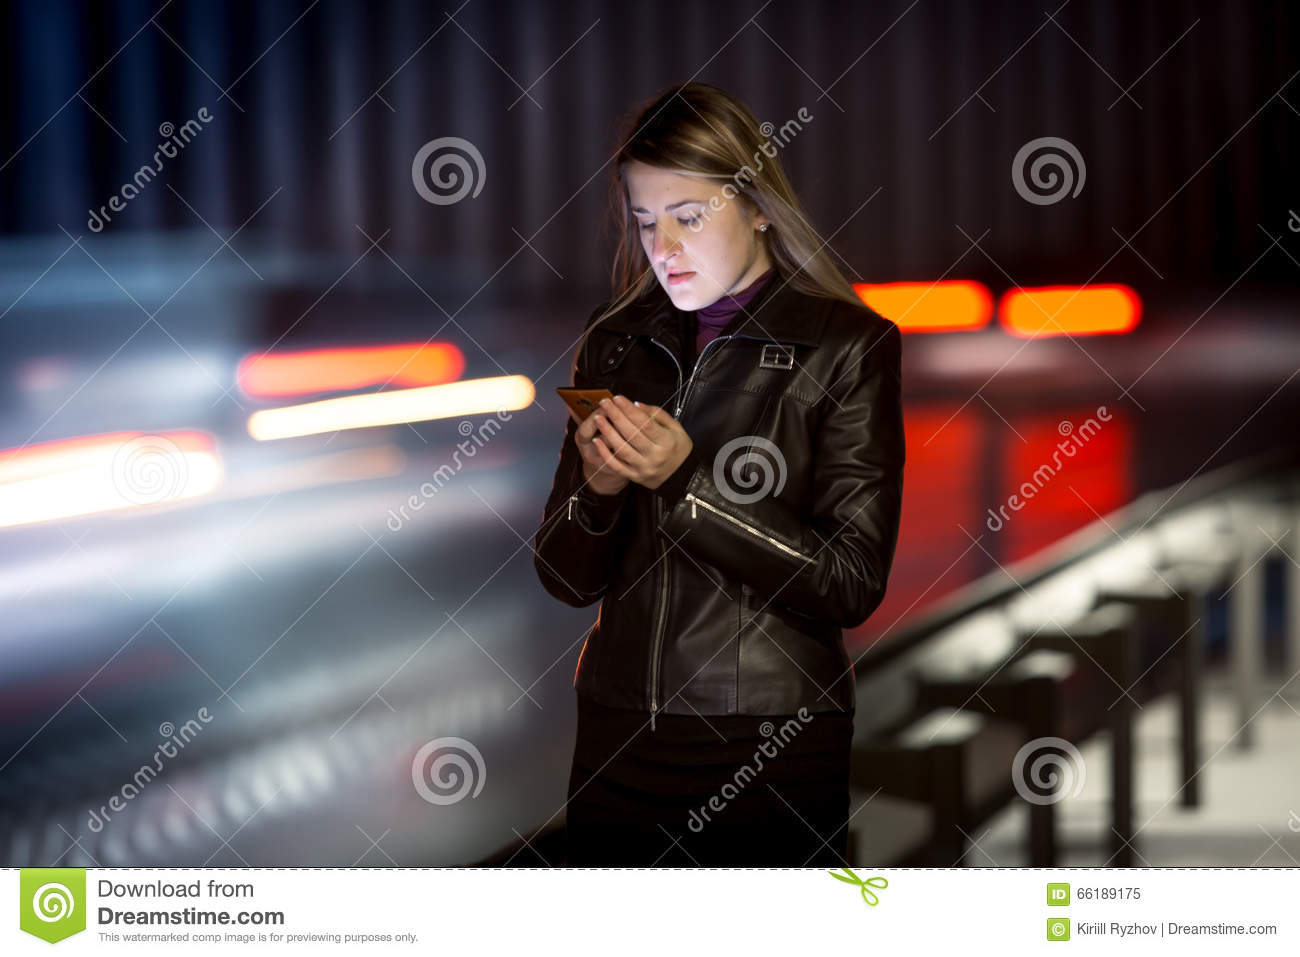 Woman with mobile phone walking at night next to highway